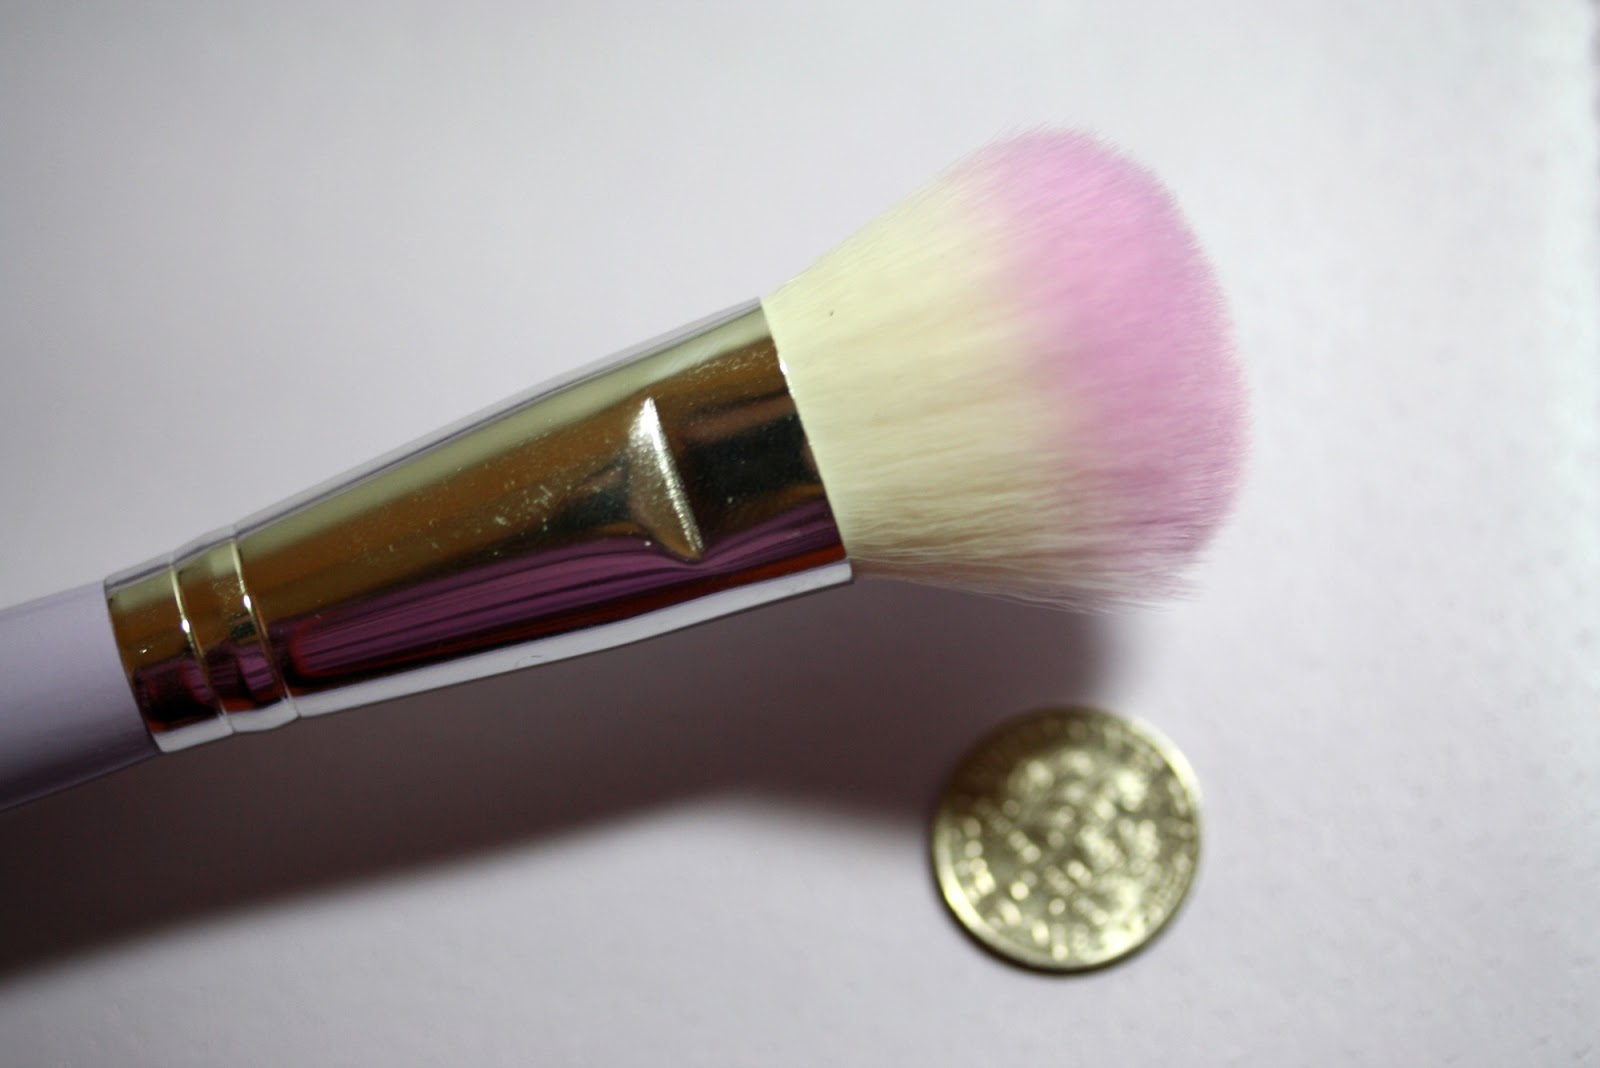 Manicurity | Crown Brush - HD Brush Set with Tweezers + Mirror in purple is a great brush set for beginners or someone that travels a lot!